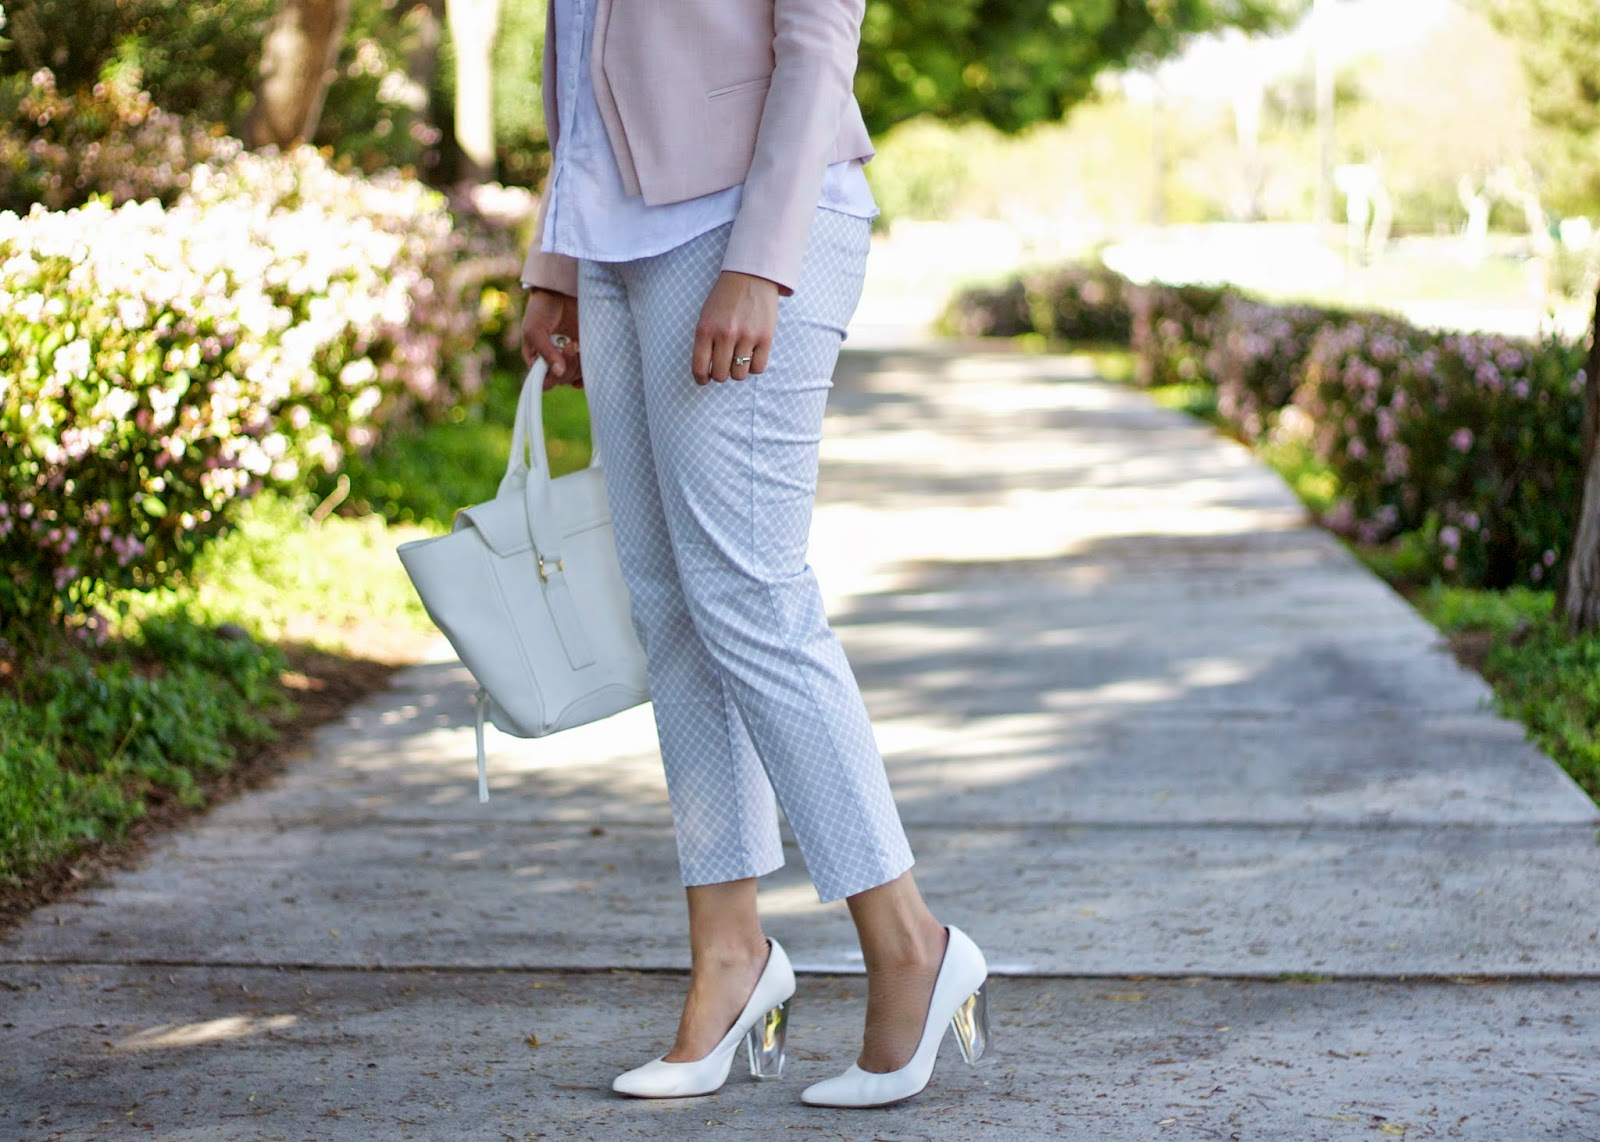 White Aldo heels, what to wear with white heels, aldo heels blogger, best of aldo heels, clear heels chic